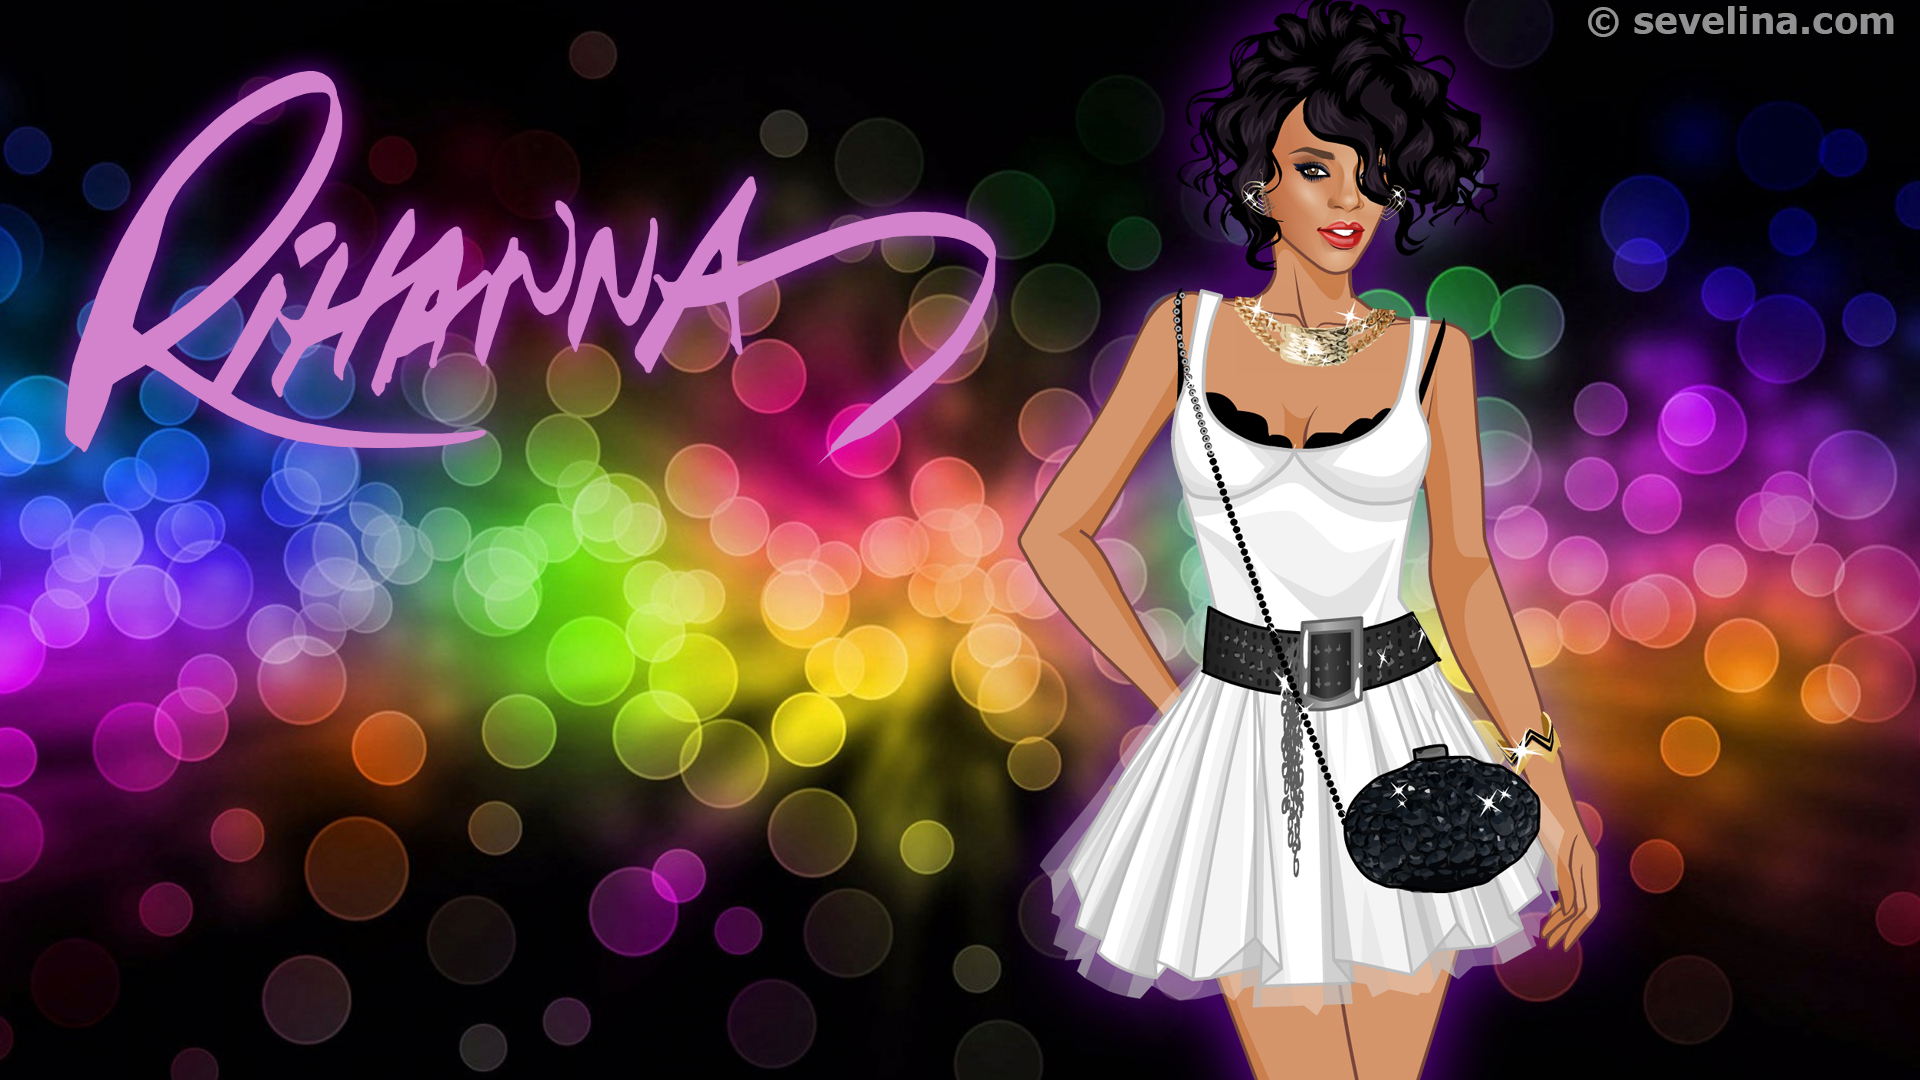 rihanna-wallpapers-2014-sevelina- Full HD